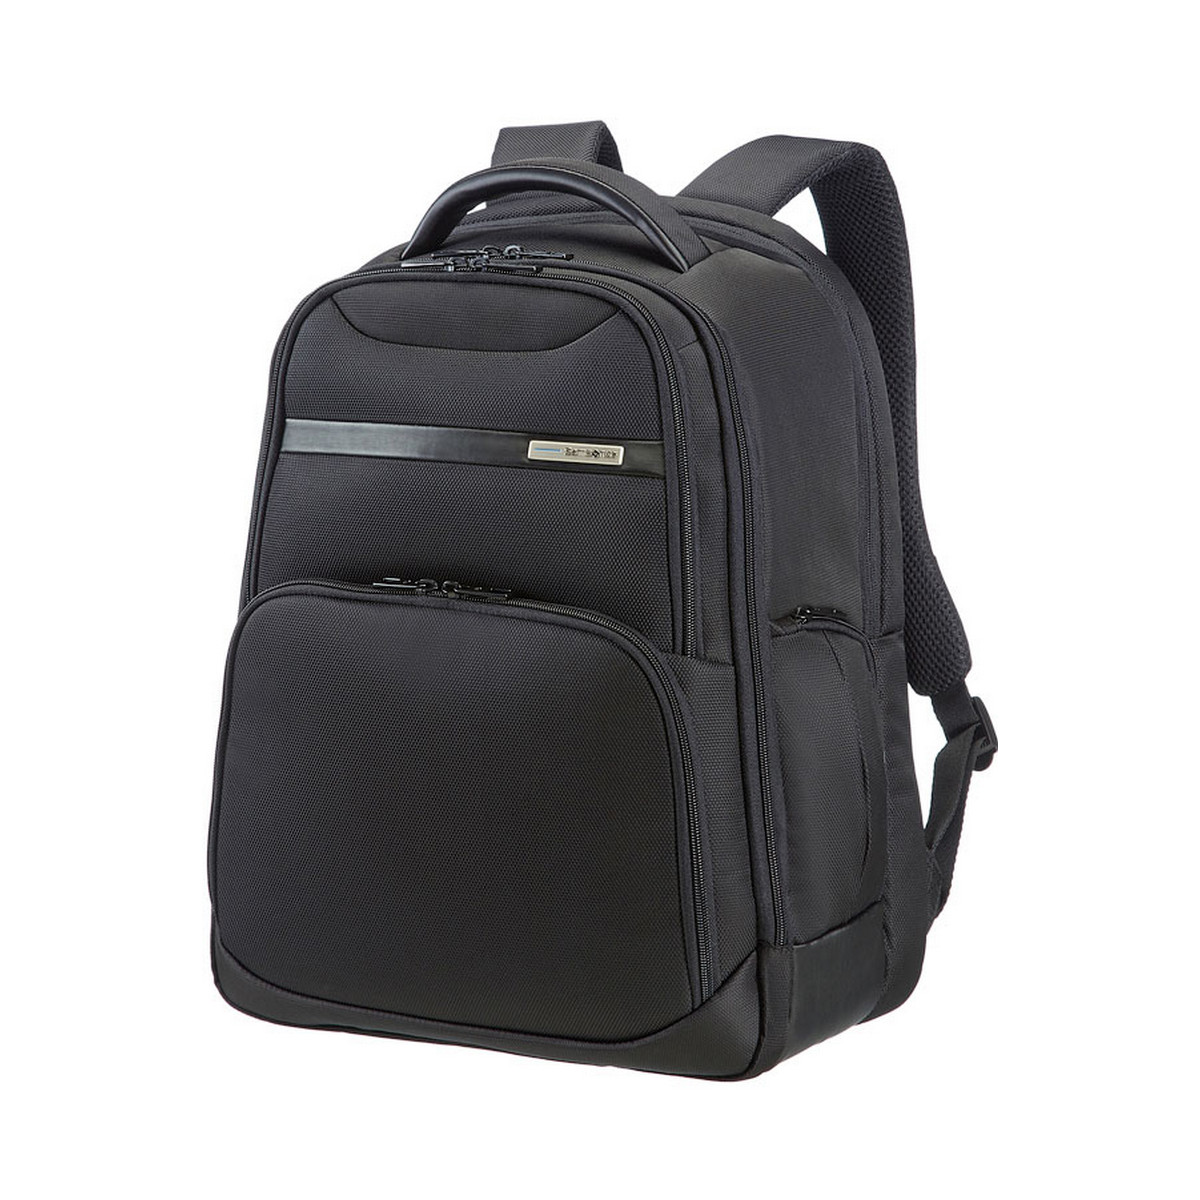 LAPT. BACKPACK M 15/16 VECTURA - SAMSONITE